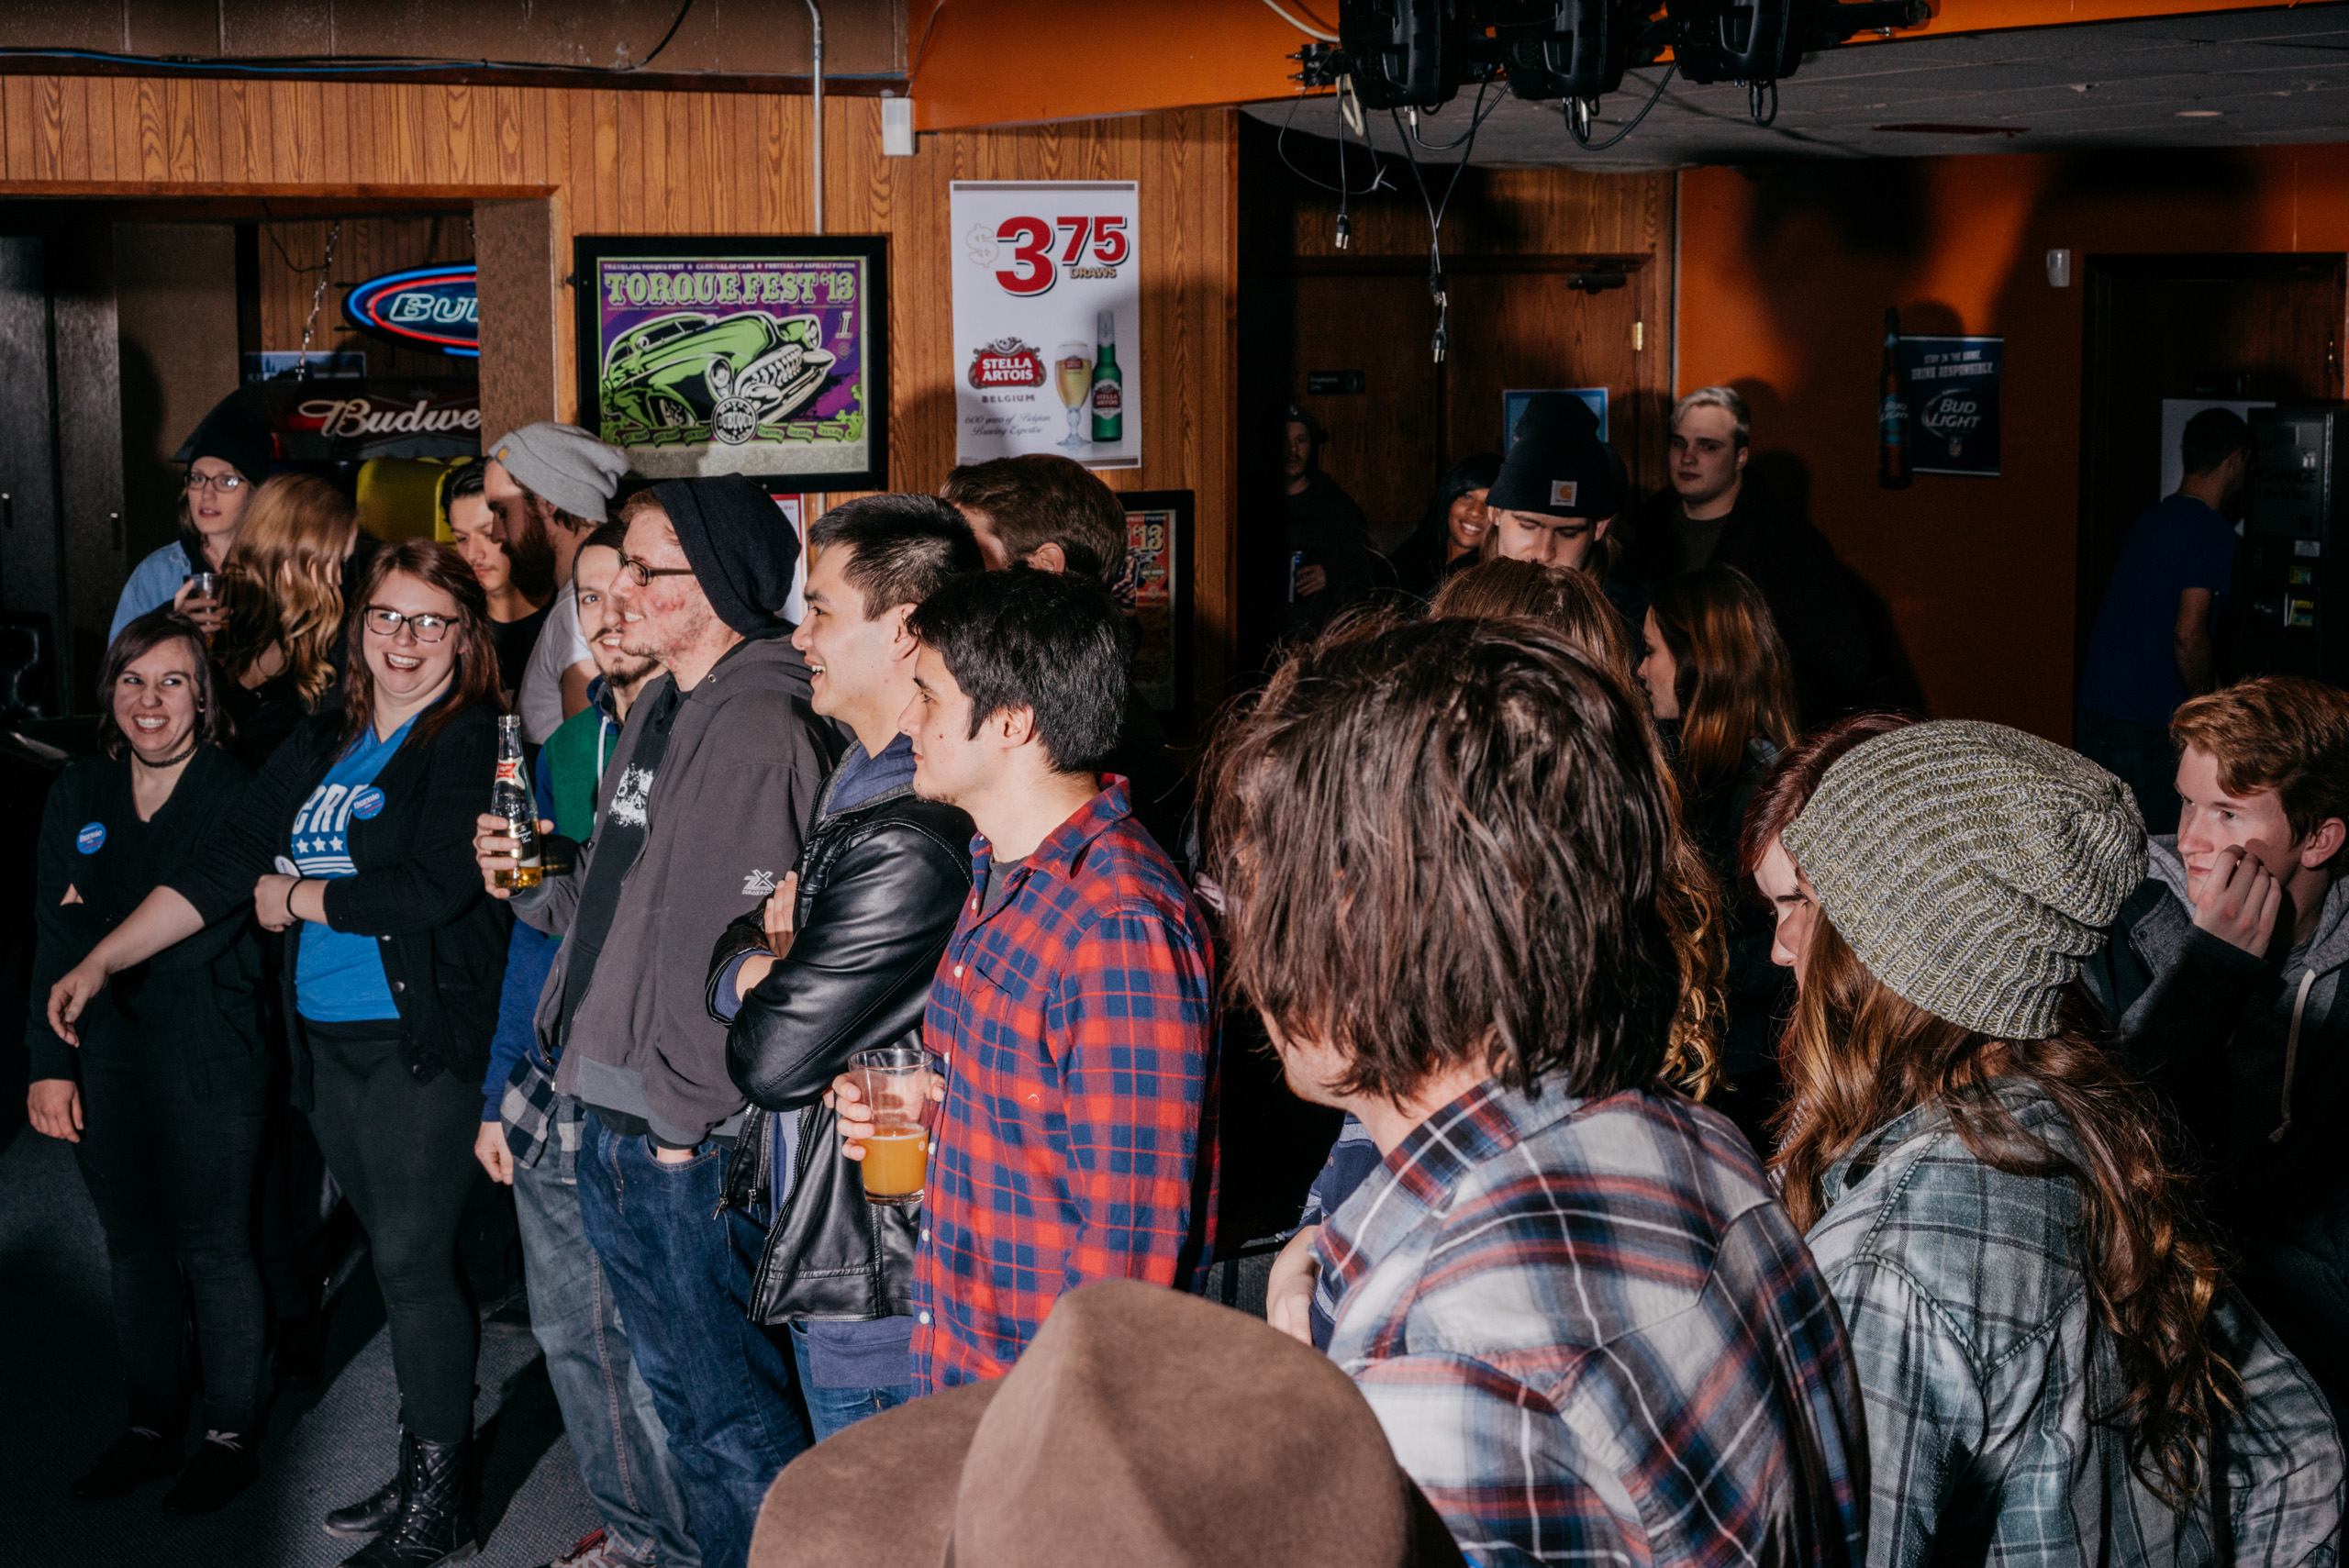 The scene at a Bernie Sanders fundraiser billed as  Waterloo Shred for Bernie: Part 2  at The Wedge bar in Waterloo, IA, Saturday January 23, 2016.